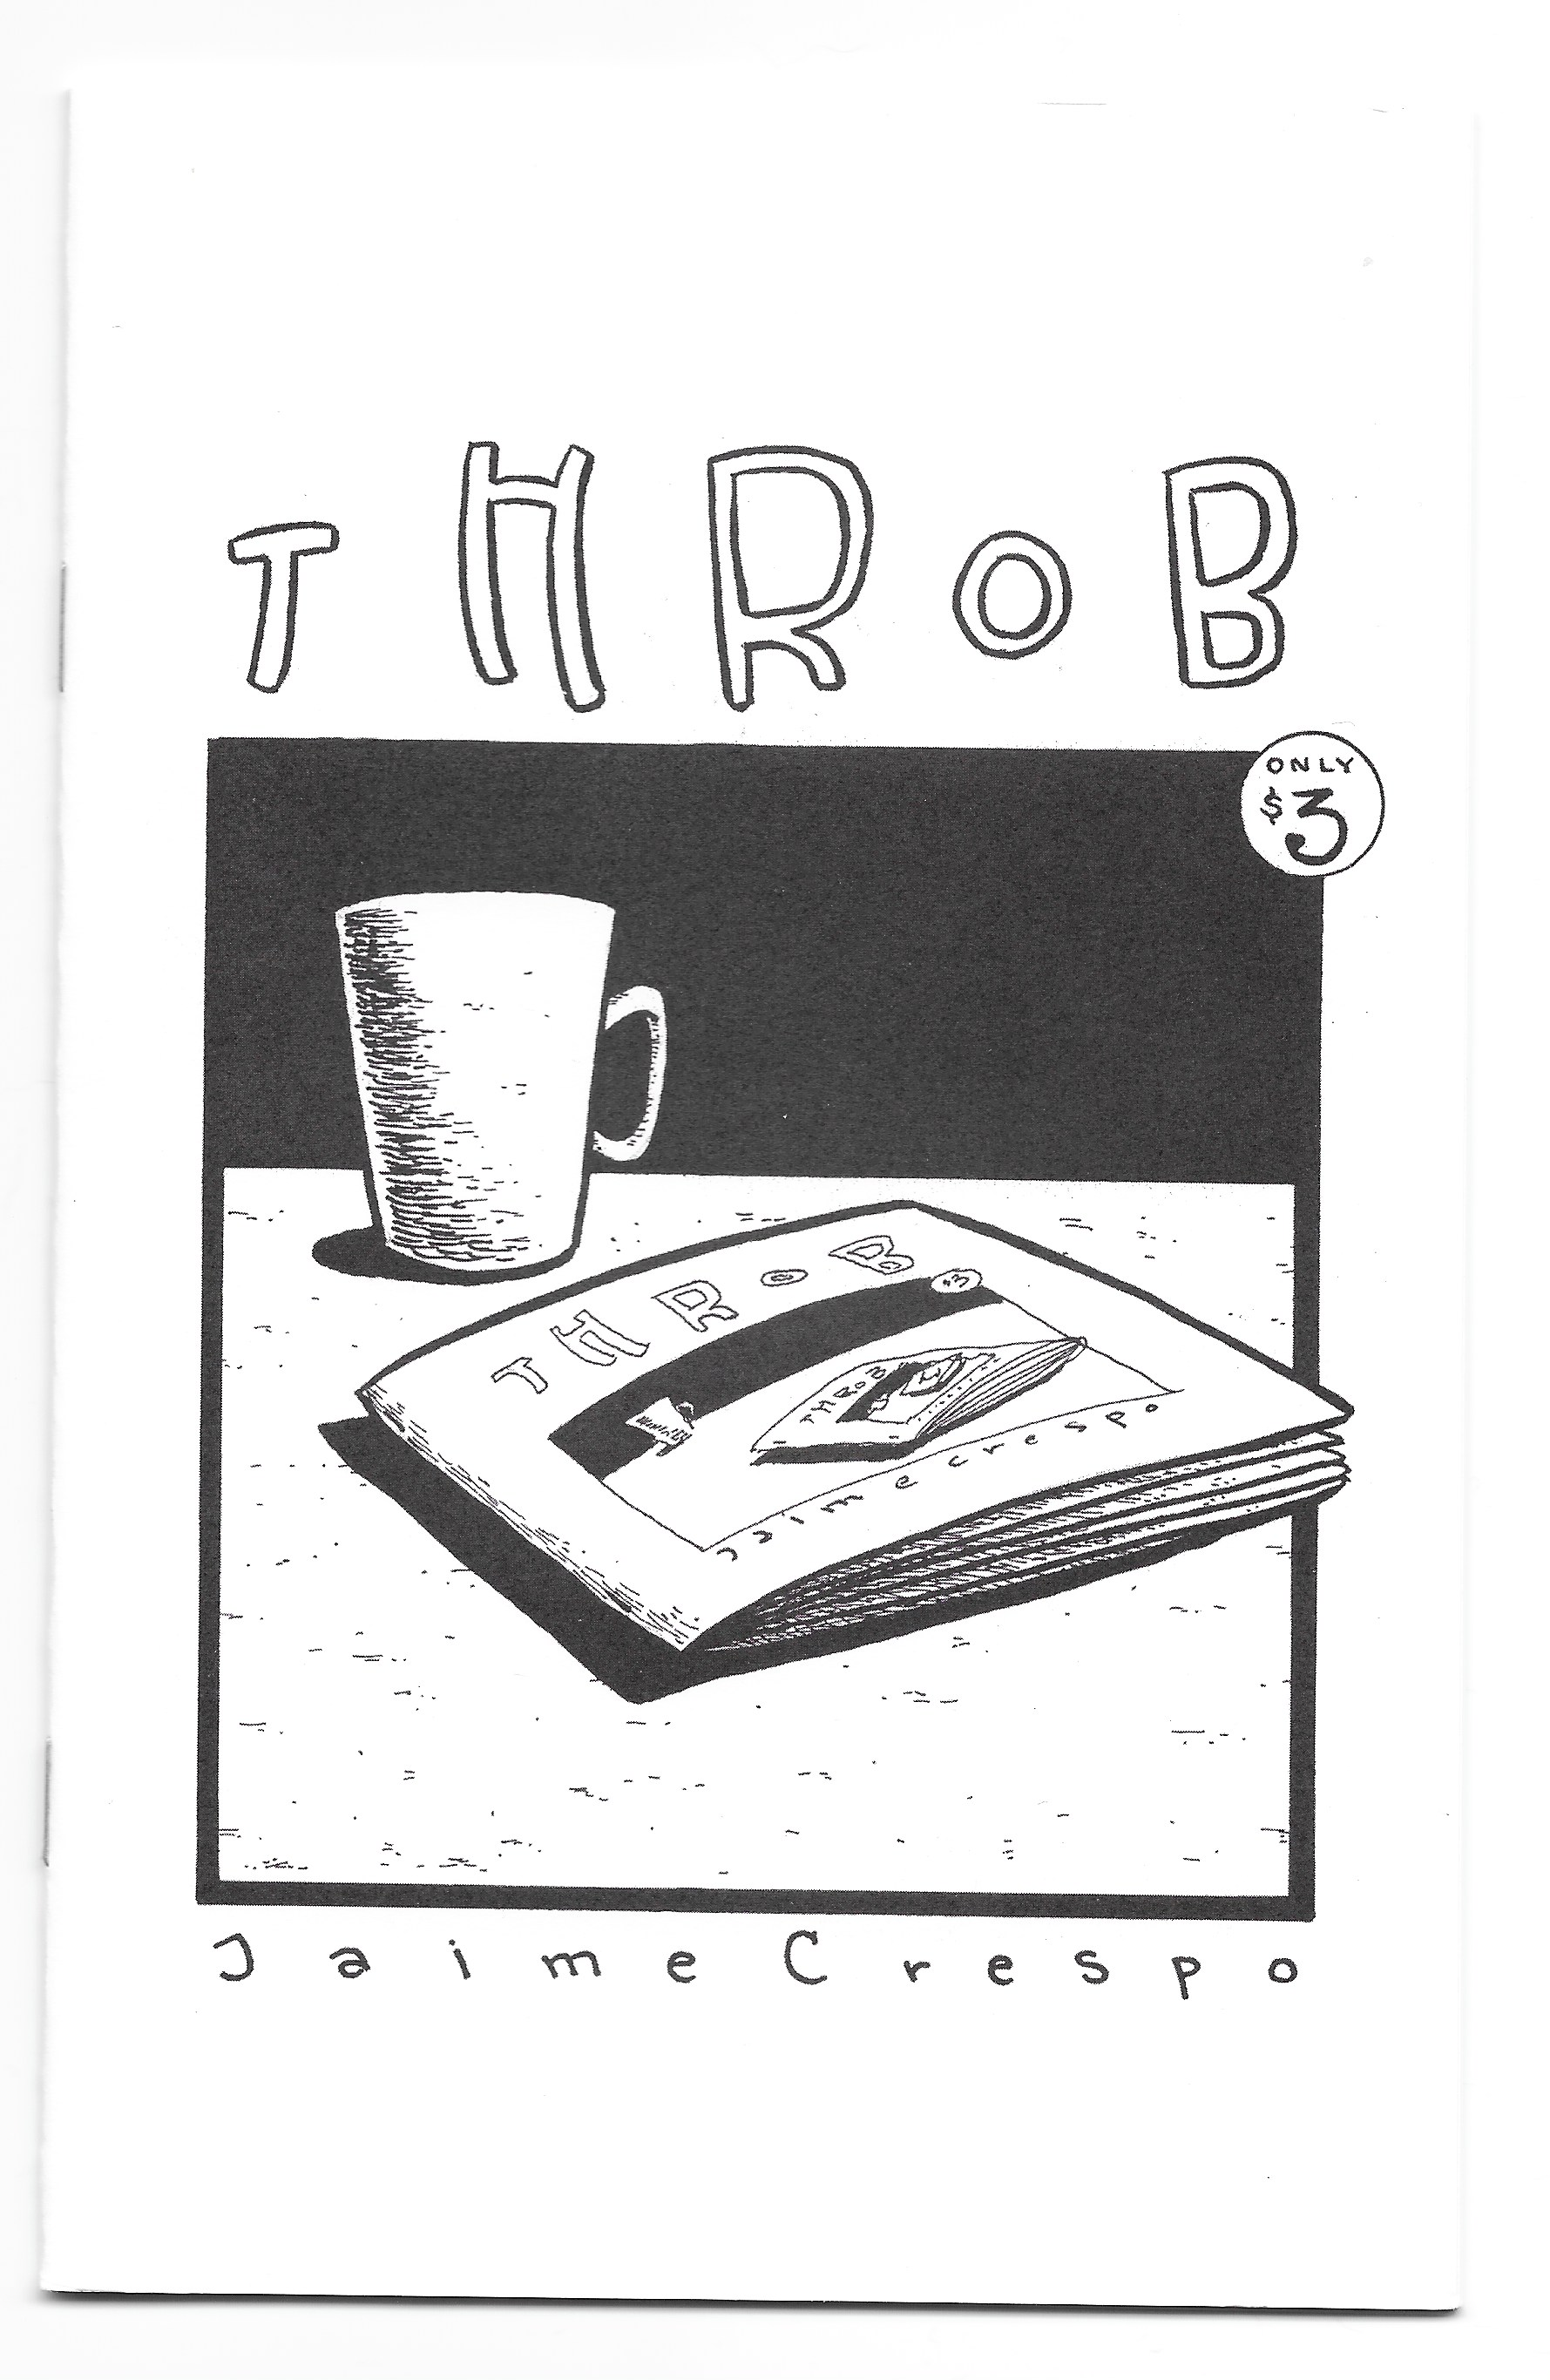 Throb - The (surprisingly) popular wordless book that was my tribute to the great New Yorker Magazine illustrator, Istvan Banyai and his wordless works of art, Zoom and Re-Zoom. The entire story behind this project is in the inside, front cover. Digest size, card stock cover, 24 pages. $4.50 ppd.